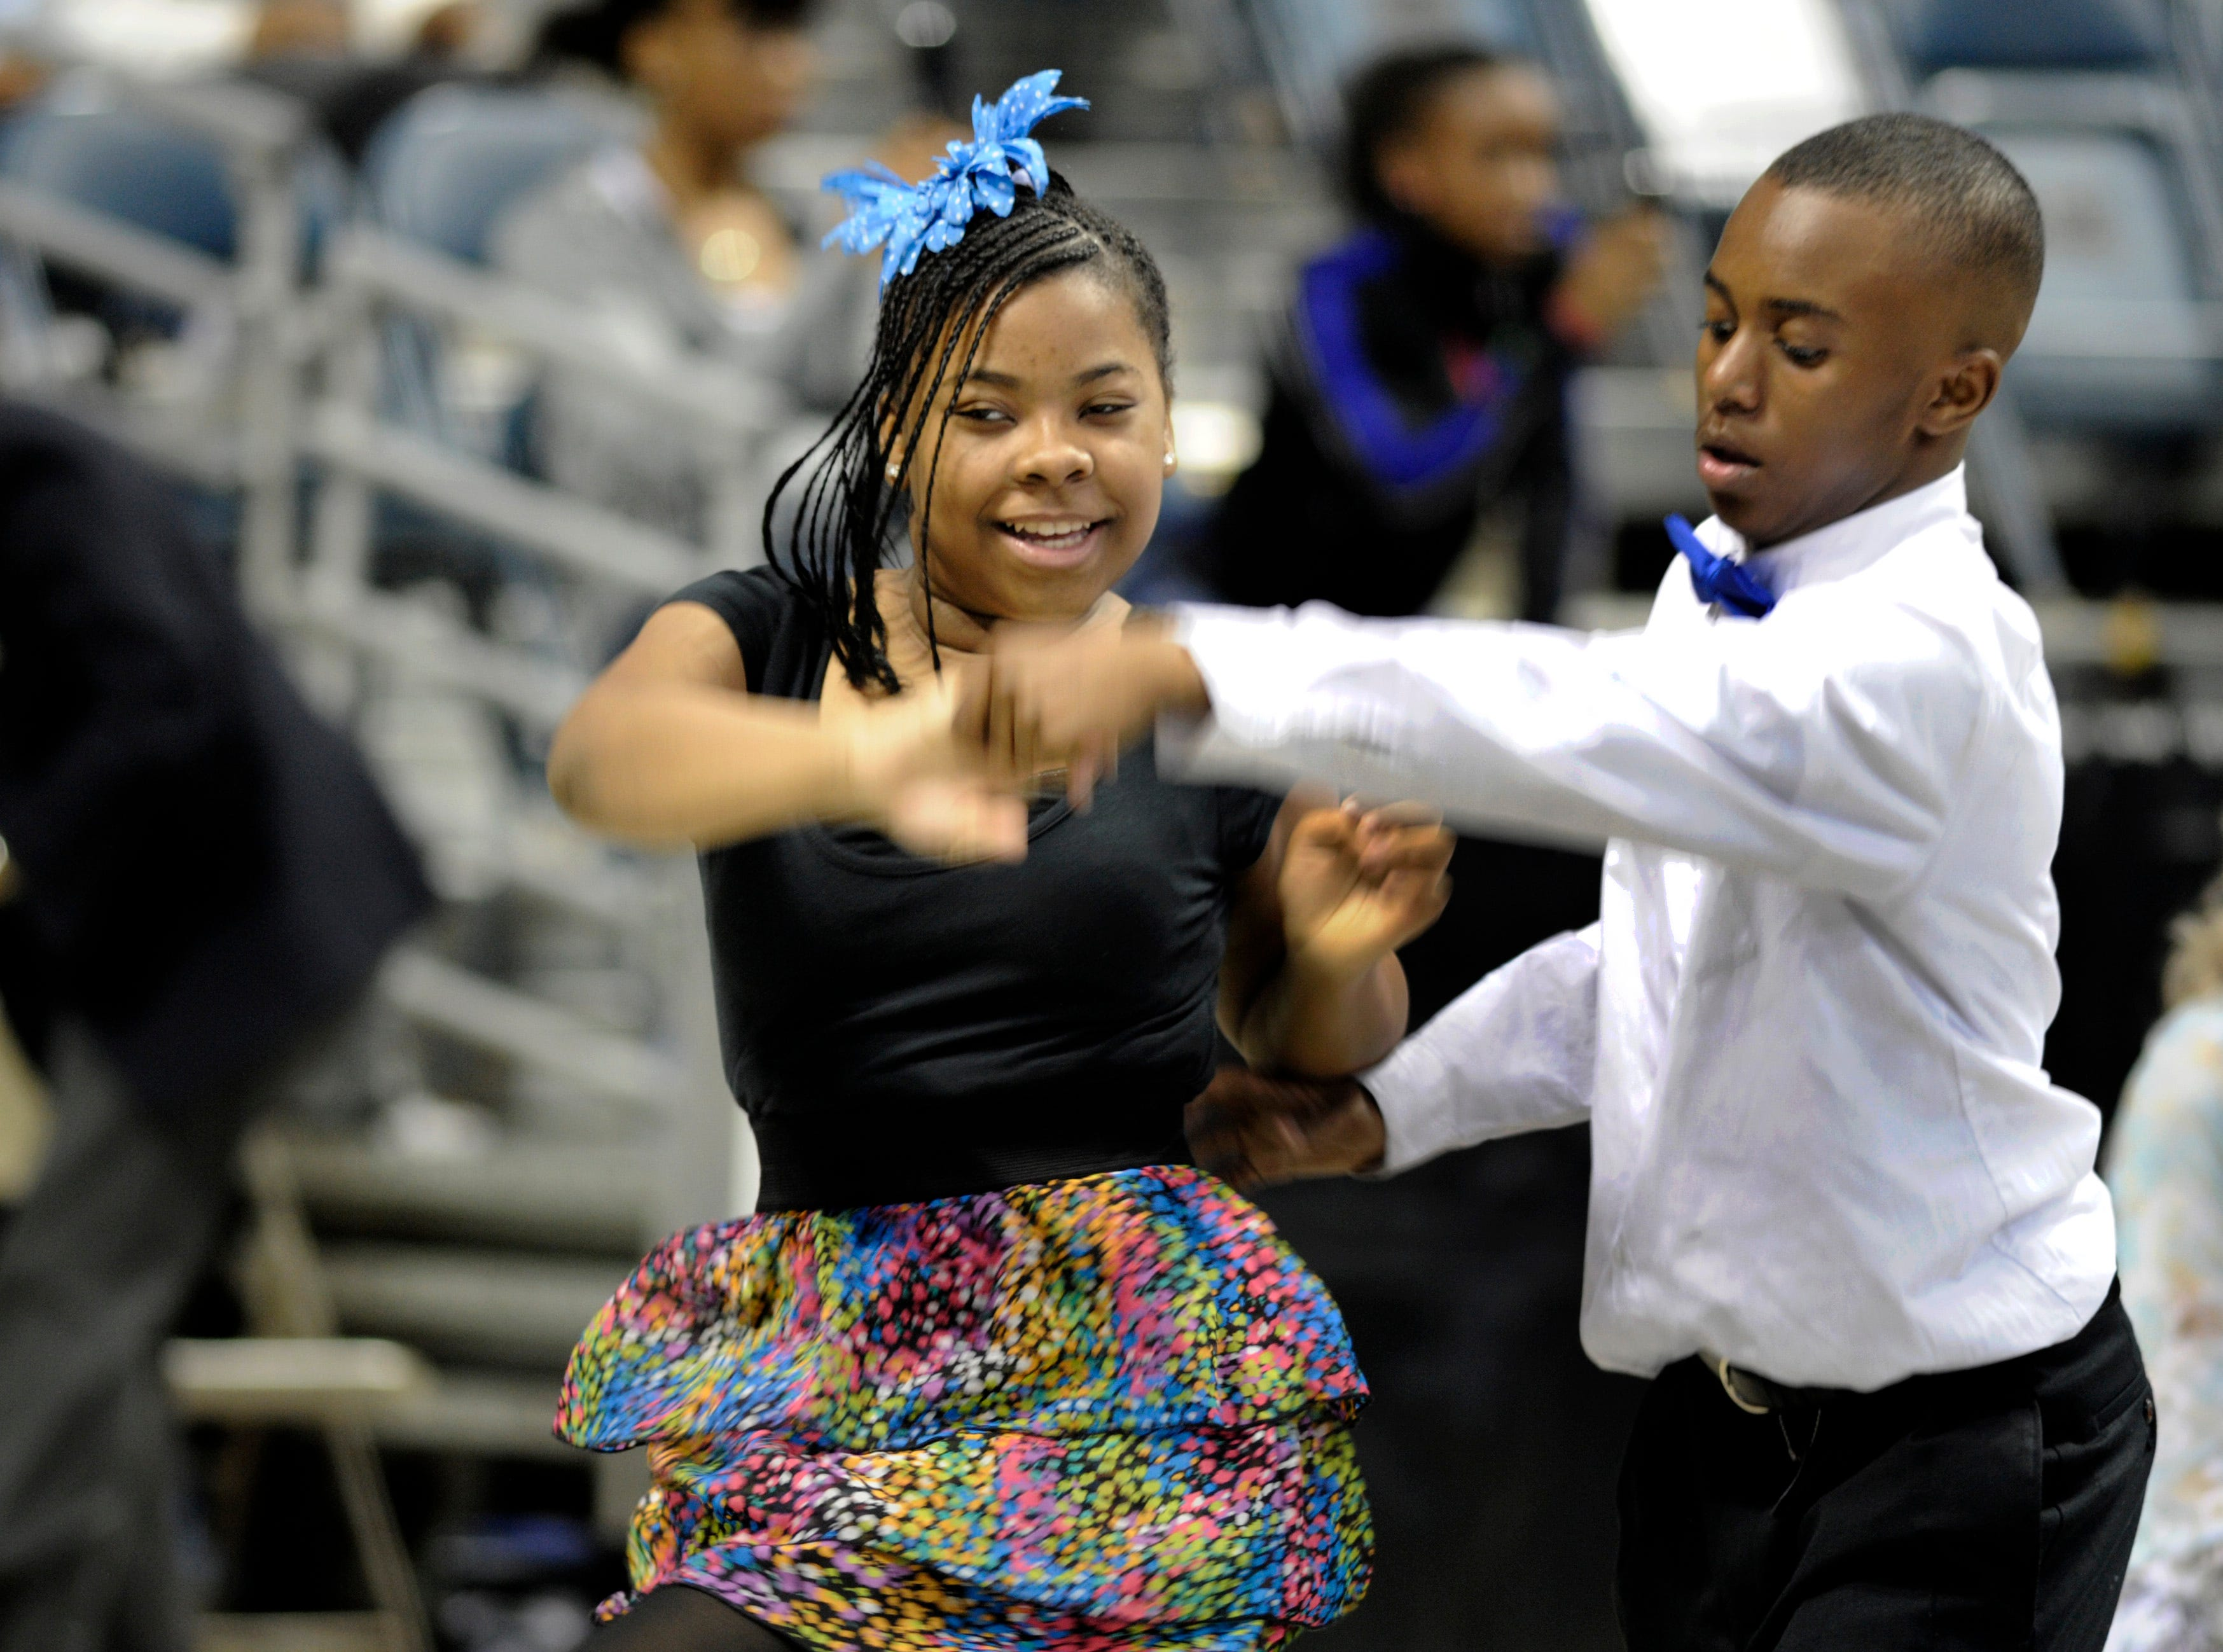 2012: Rose Oliver and Josiah Baskin of Hope Fortis School in Milwaukee dance the jitterbug during the Danceworks Mad Hot Ballroom and Tap competition at the Bradley Center.